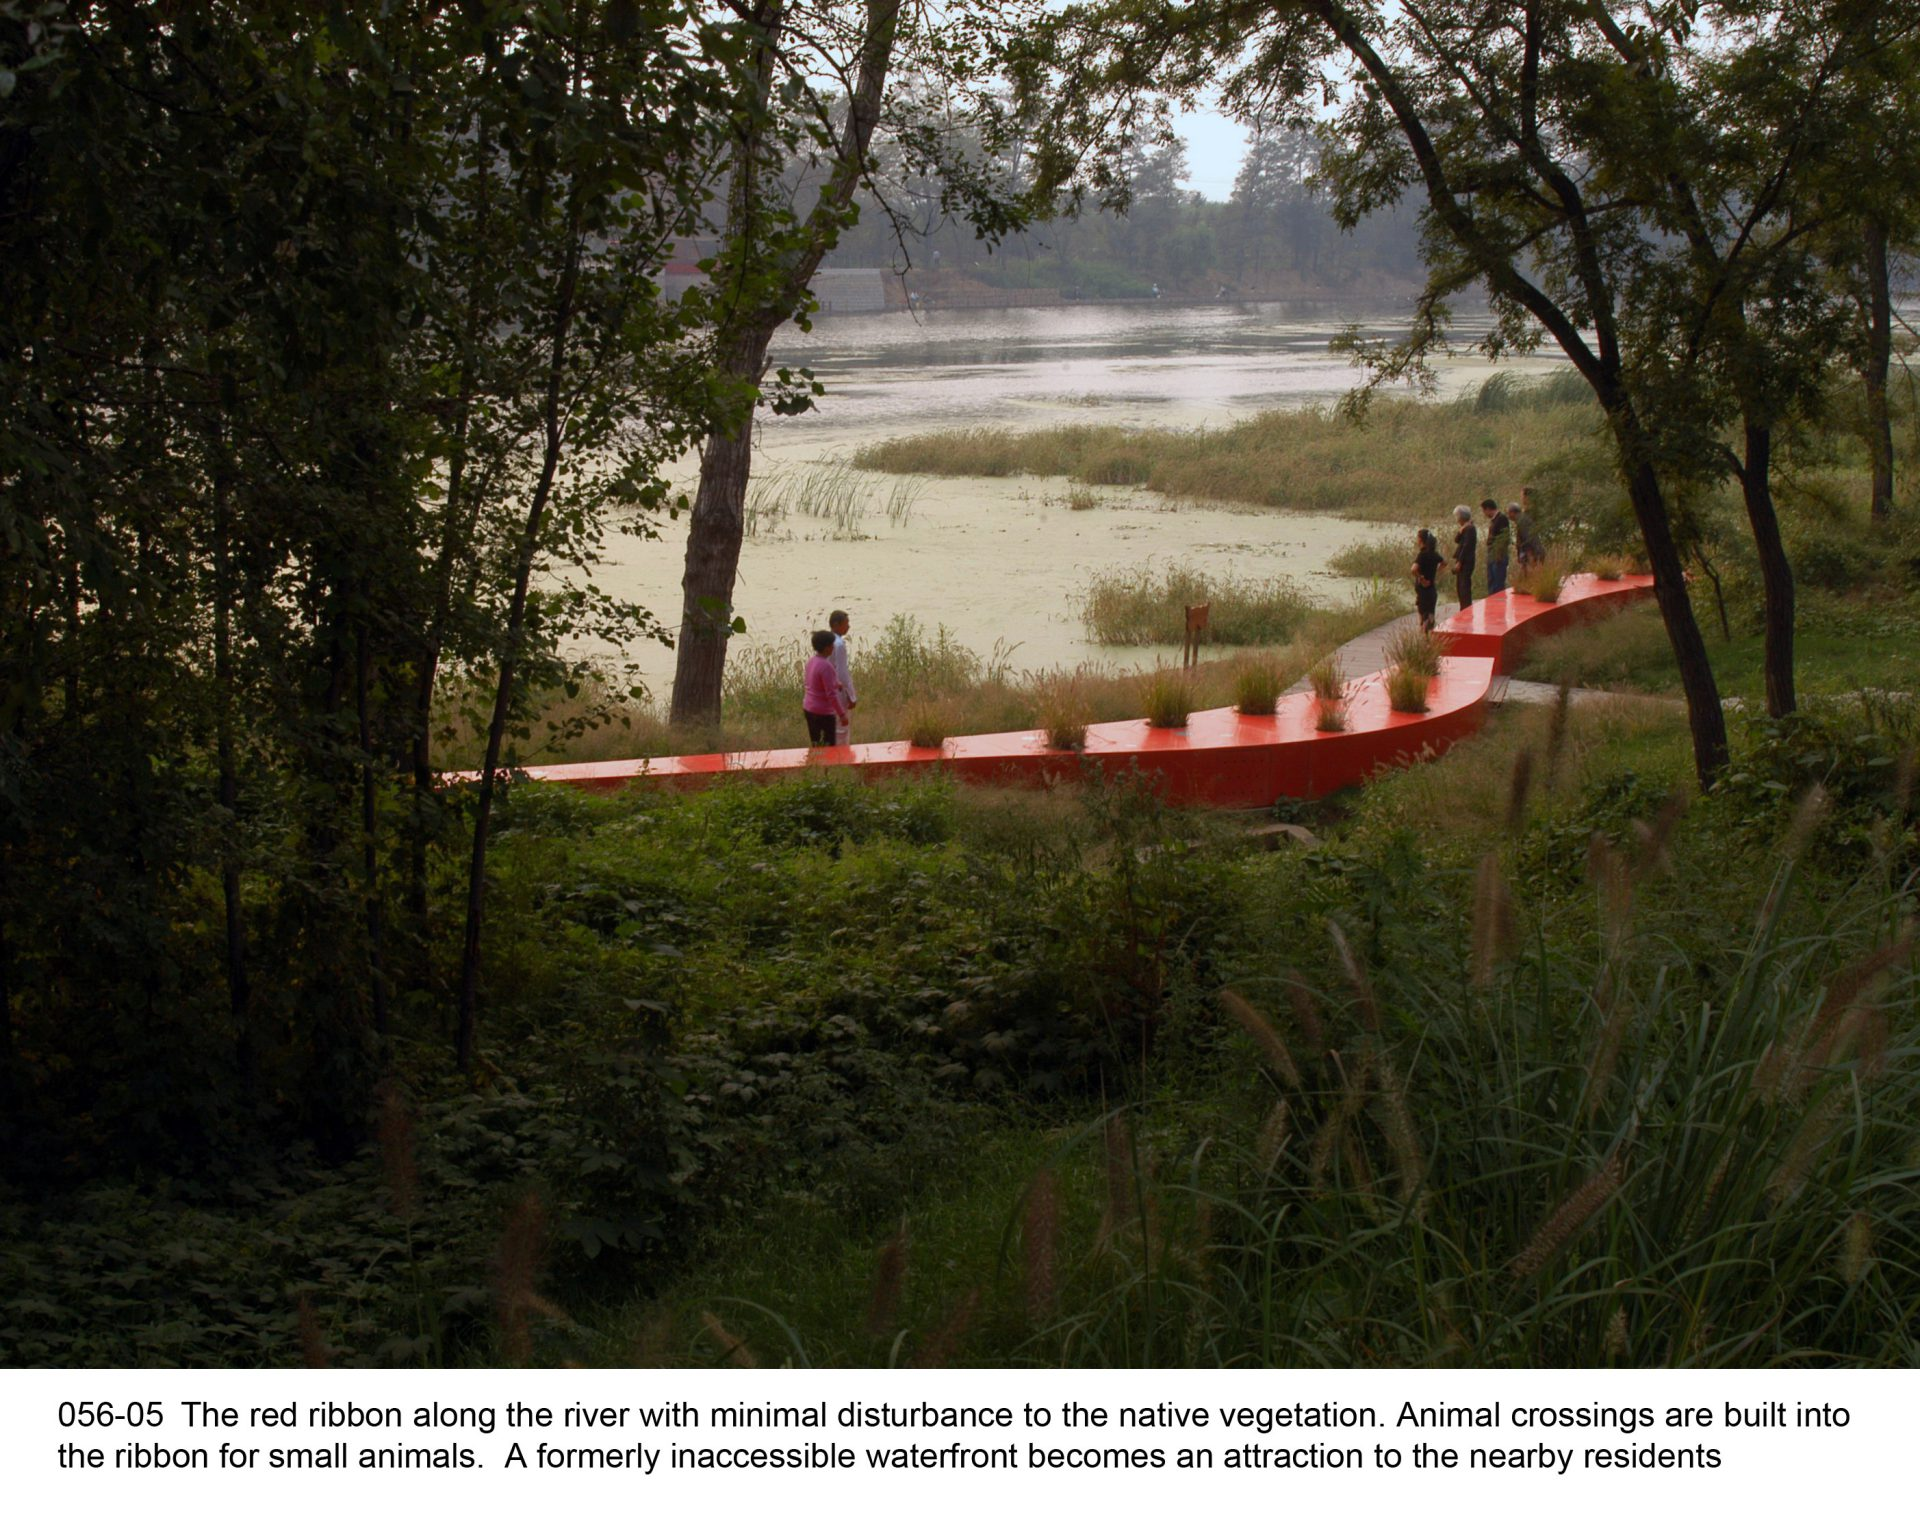 2_red-ribbon-tanghe-river-park-morethangreen_vicente_mora